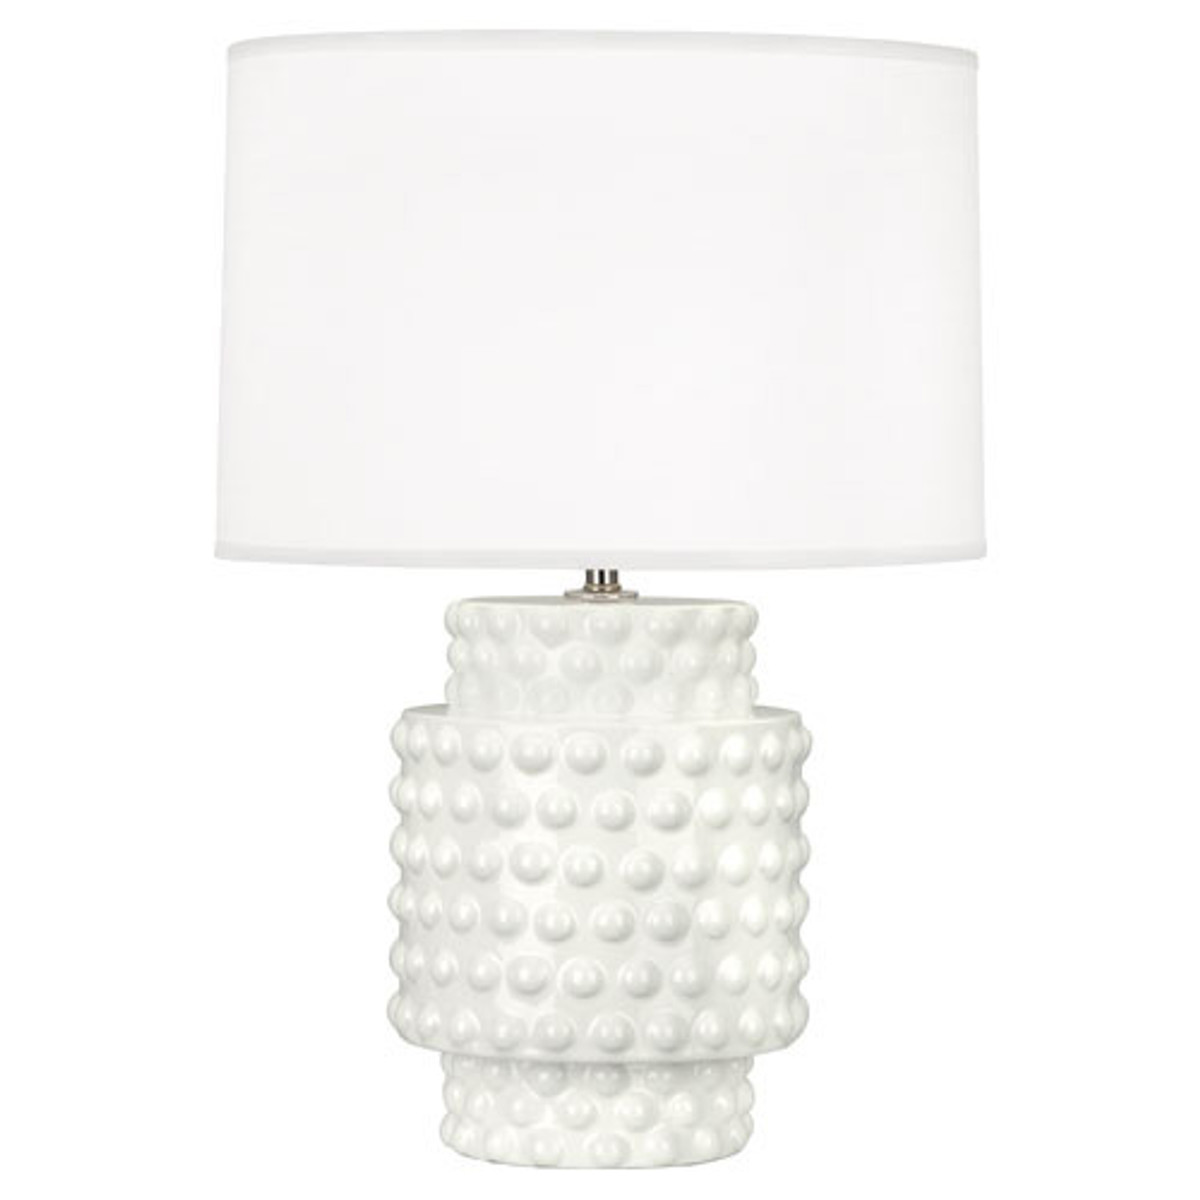 Buy The Dolly Table Lamp By Robert Abbey Price Match Guarantee Free Shipping On All Orders From Lightopia